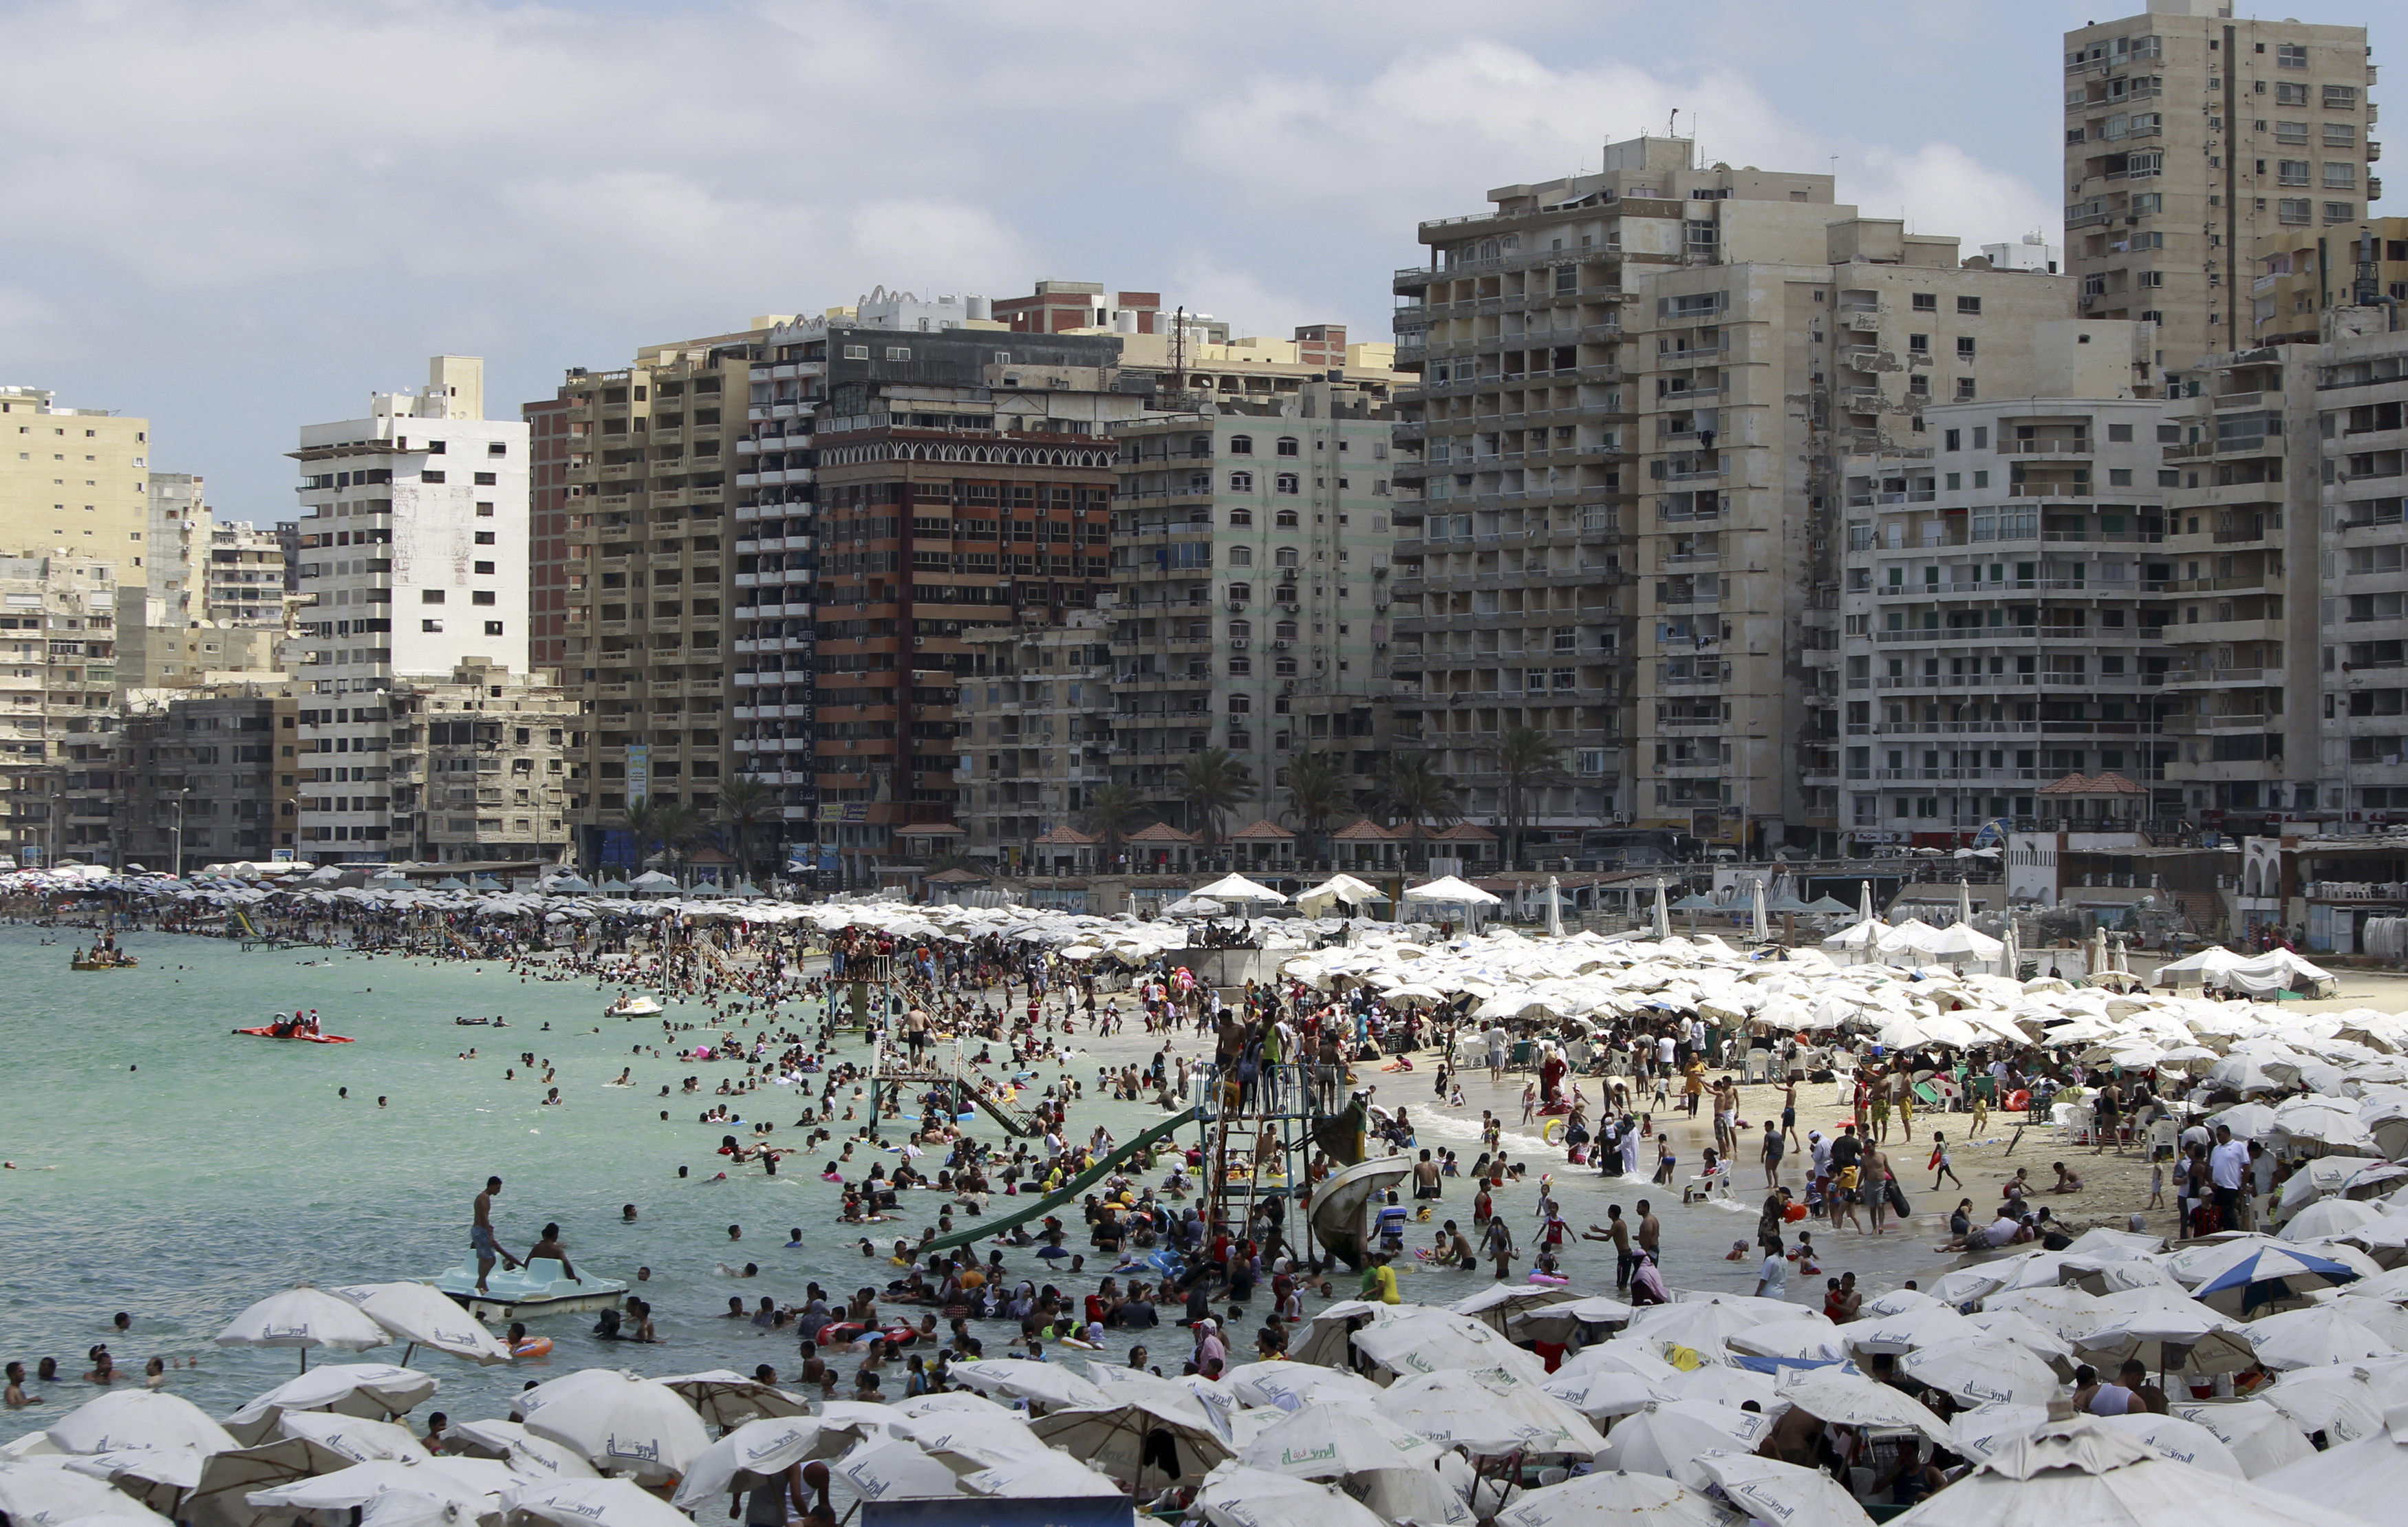 Egyptians crowd a public beach during a hot day in the Mediterranean port city of Alexandria, 230 km (143 miles) north of Cairo September 7, 2012. REUTERS/Amr Abdallah Dalsh